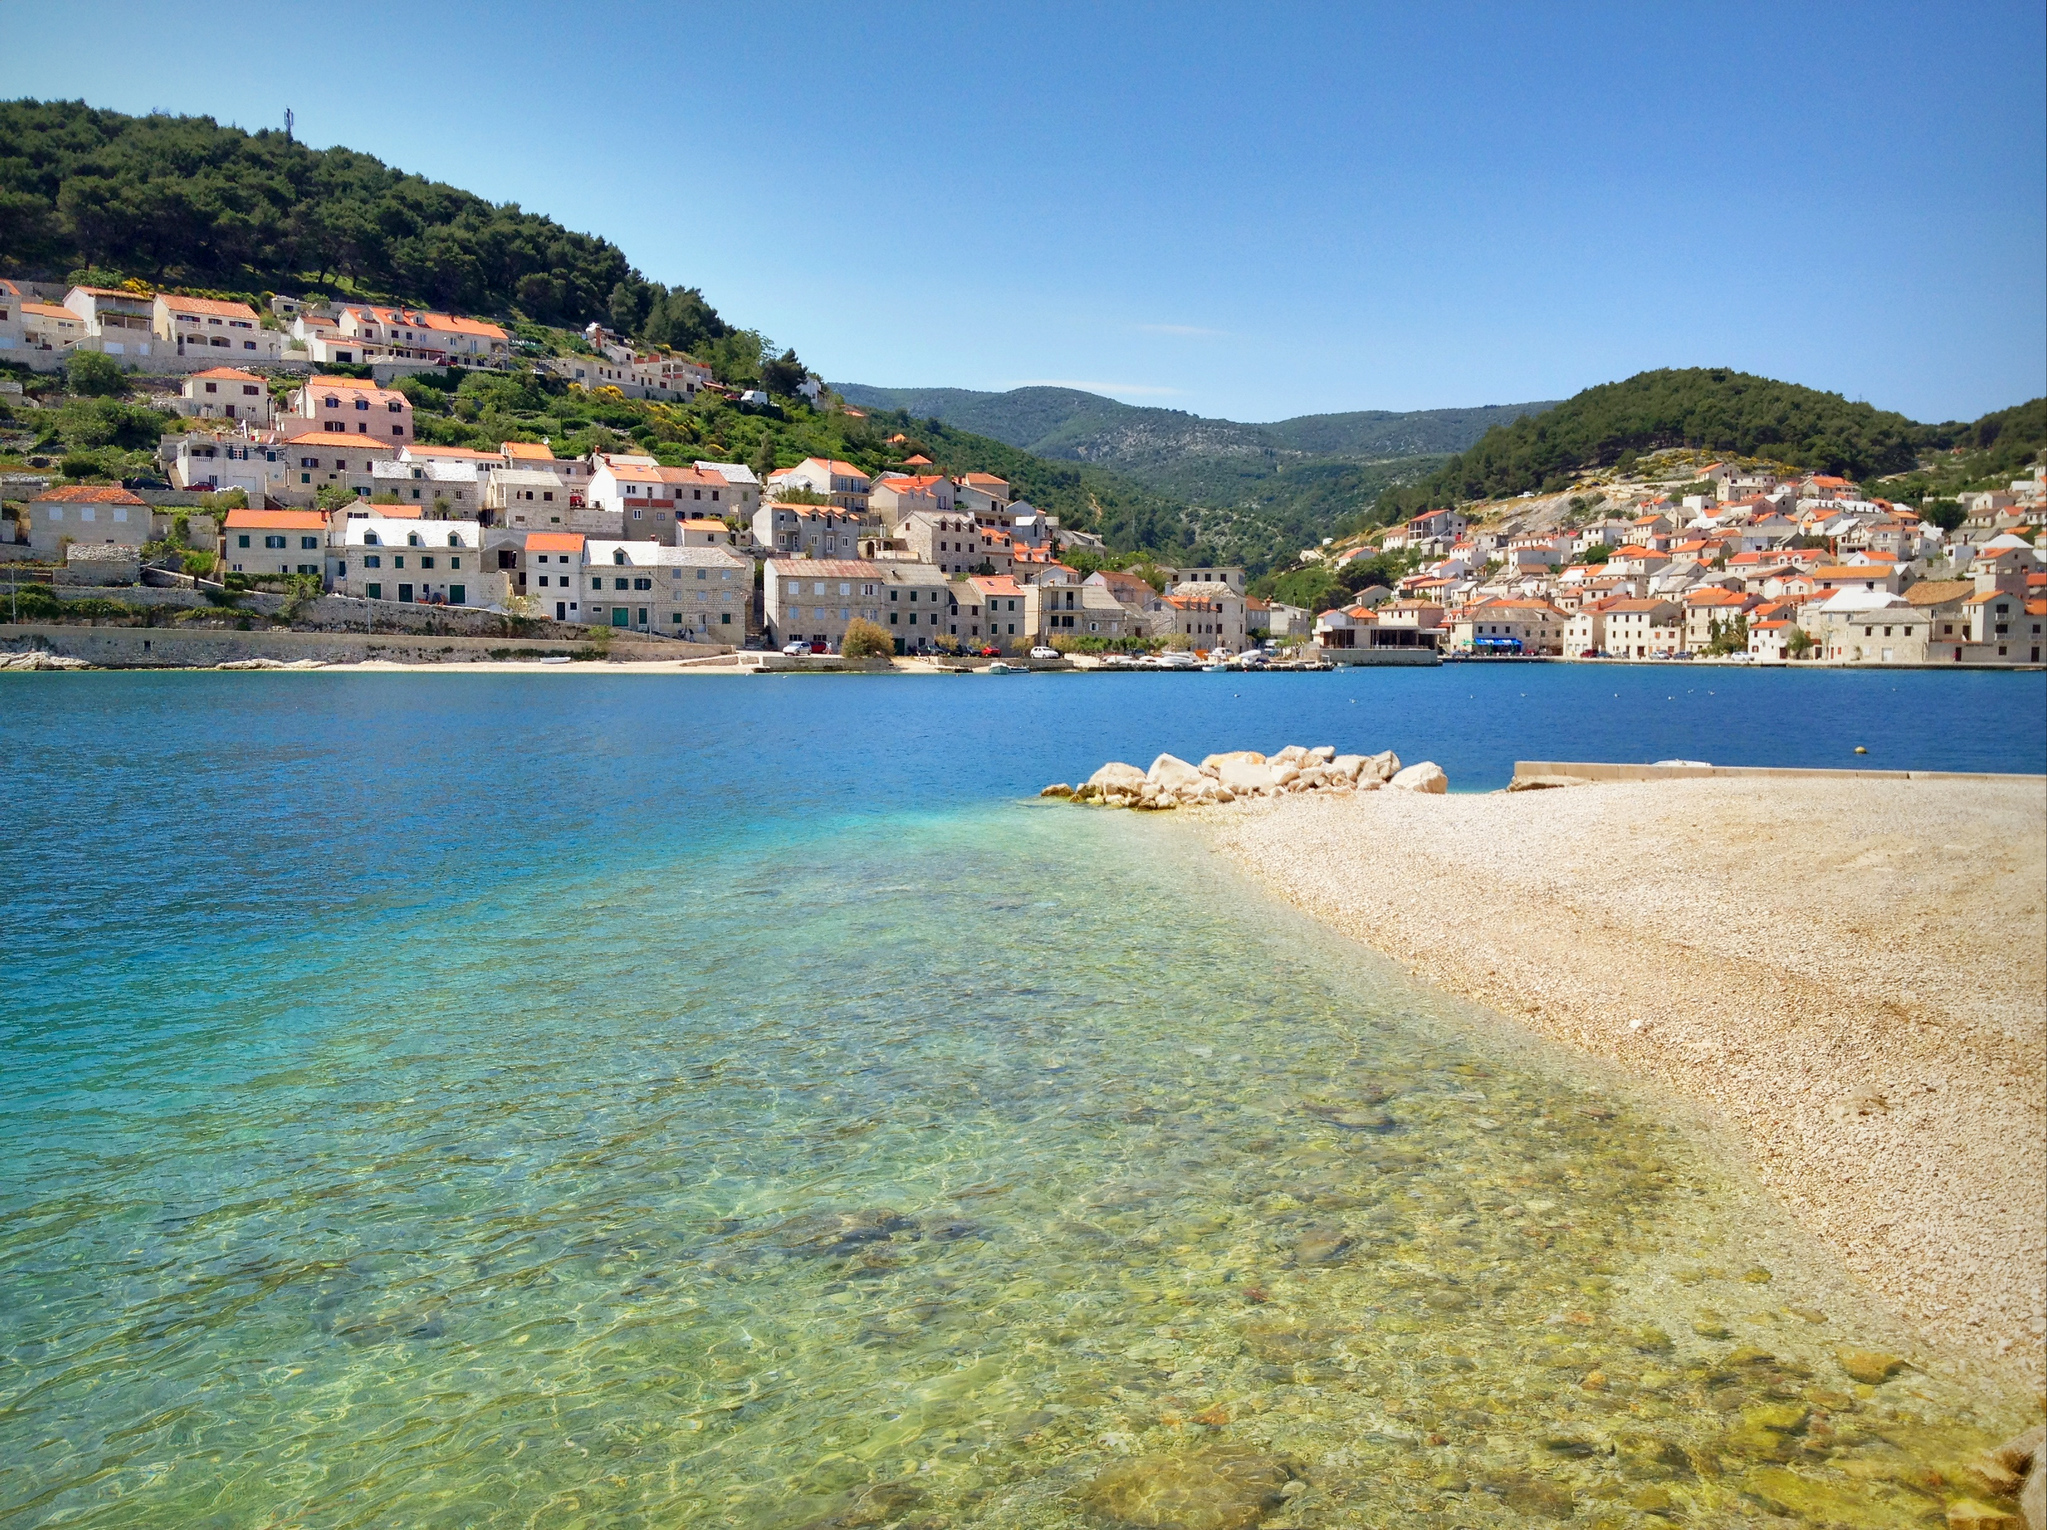 Pucisca, Croatia. A white stone beach leads into clear turquoise water; in the background are white buildings with orange roofs in front of green hills.